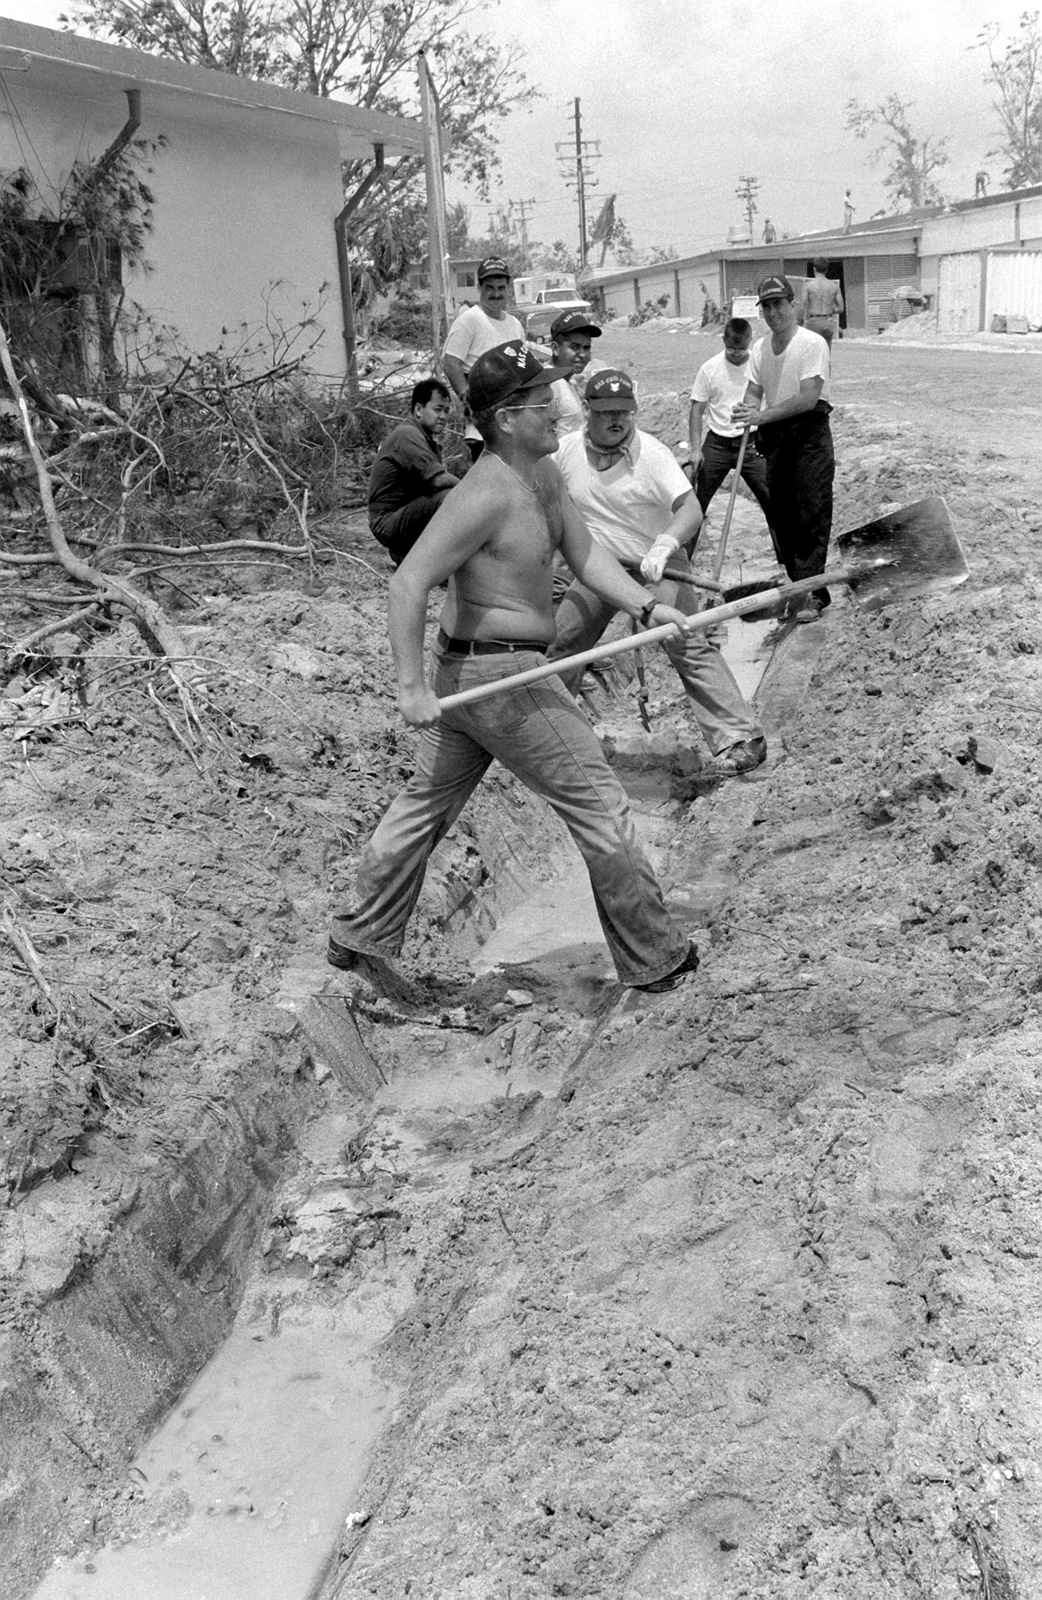 Personnel from the station dig a trench through ash in the